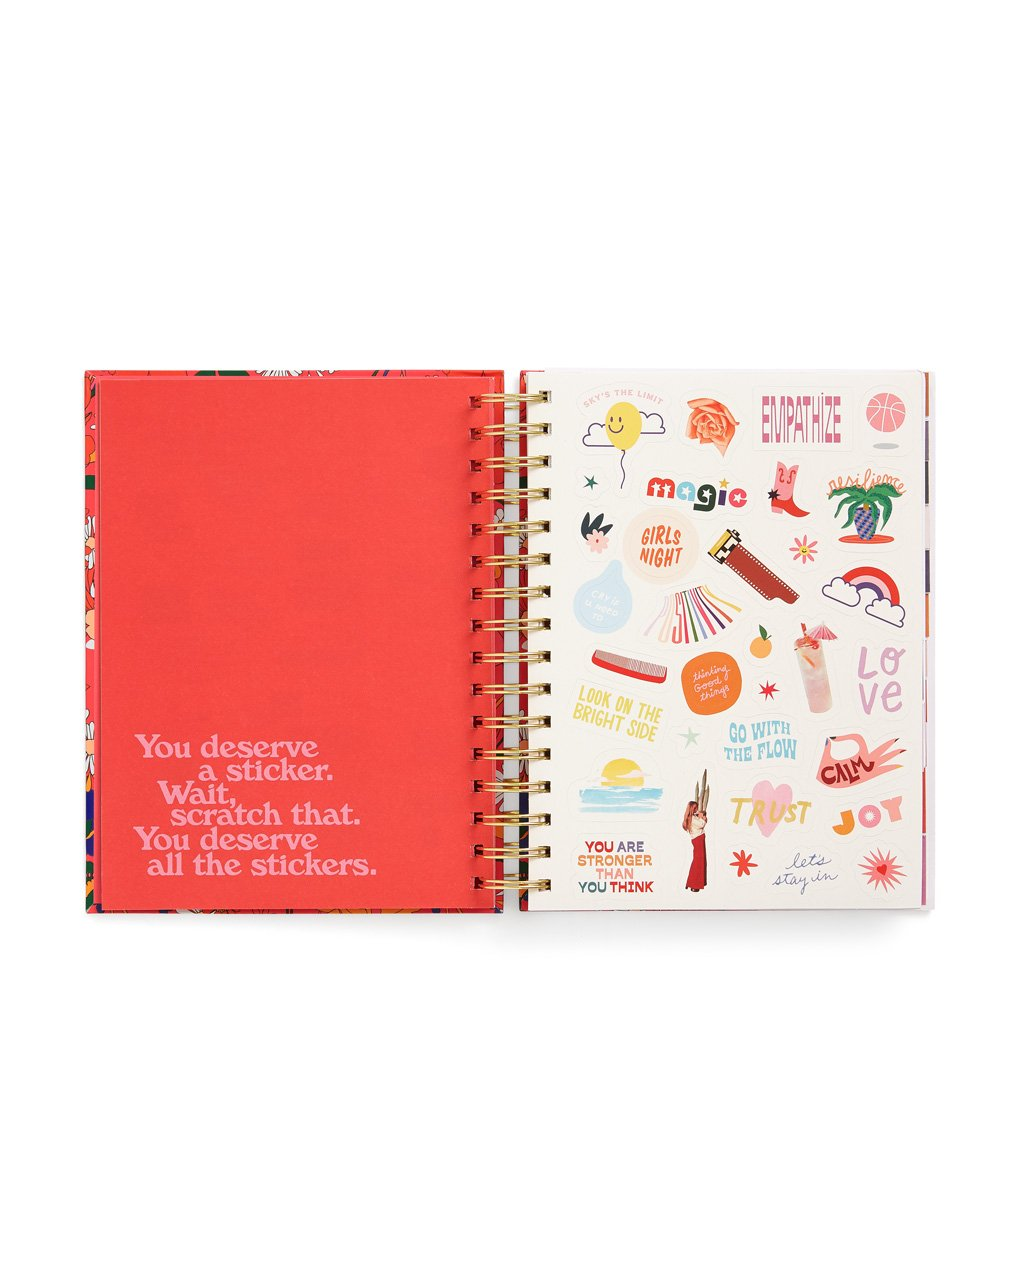 interior image of planner showing sticker page and an end sheet featuring an inspirational quote